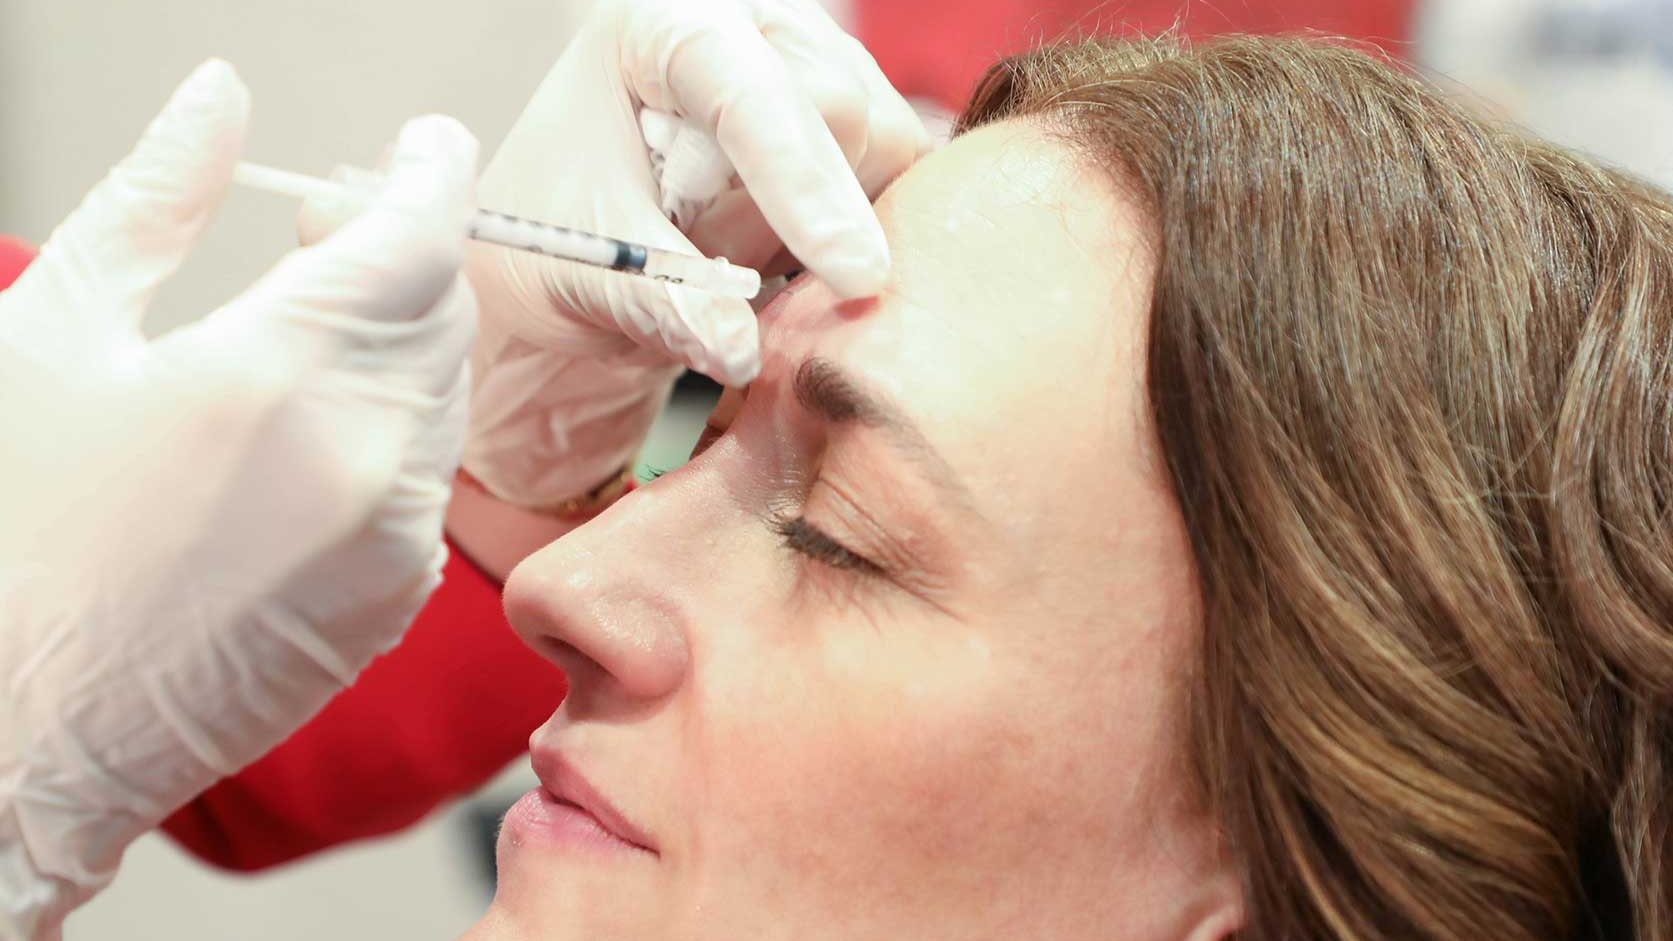 Maura has an injectable wrinkle reducer treatment.